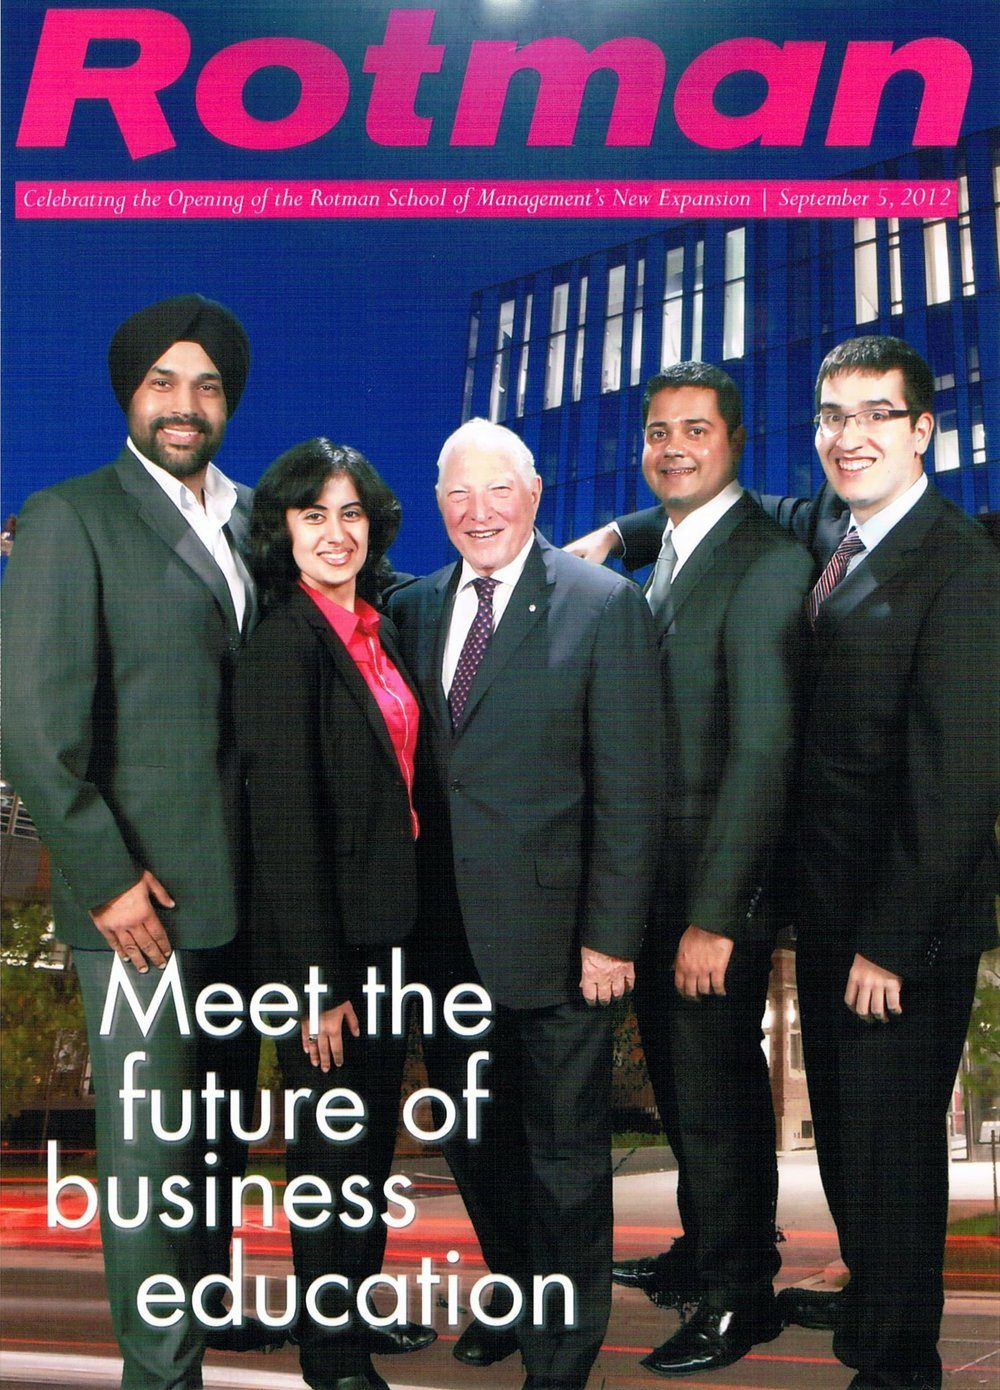 On the cover of the Rotman Magazine with Joe Rotman!